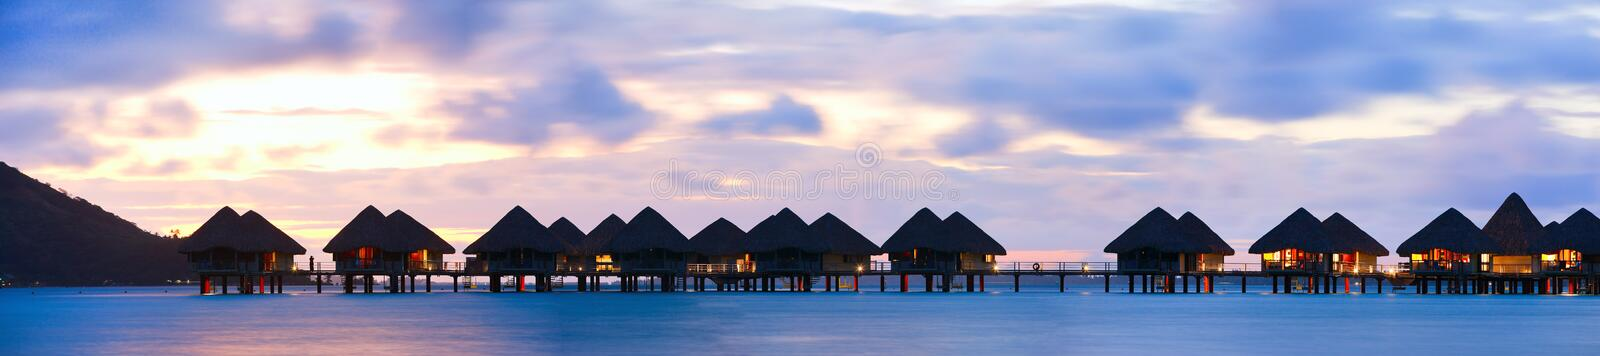 Overwater bungalows. Panorama of over the water bungalows at sunset stock image